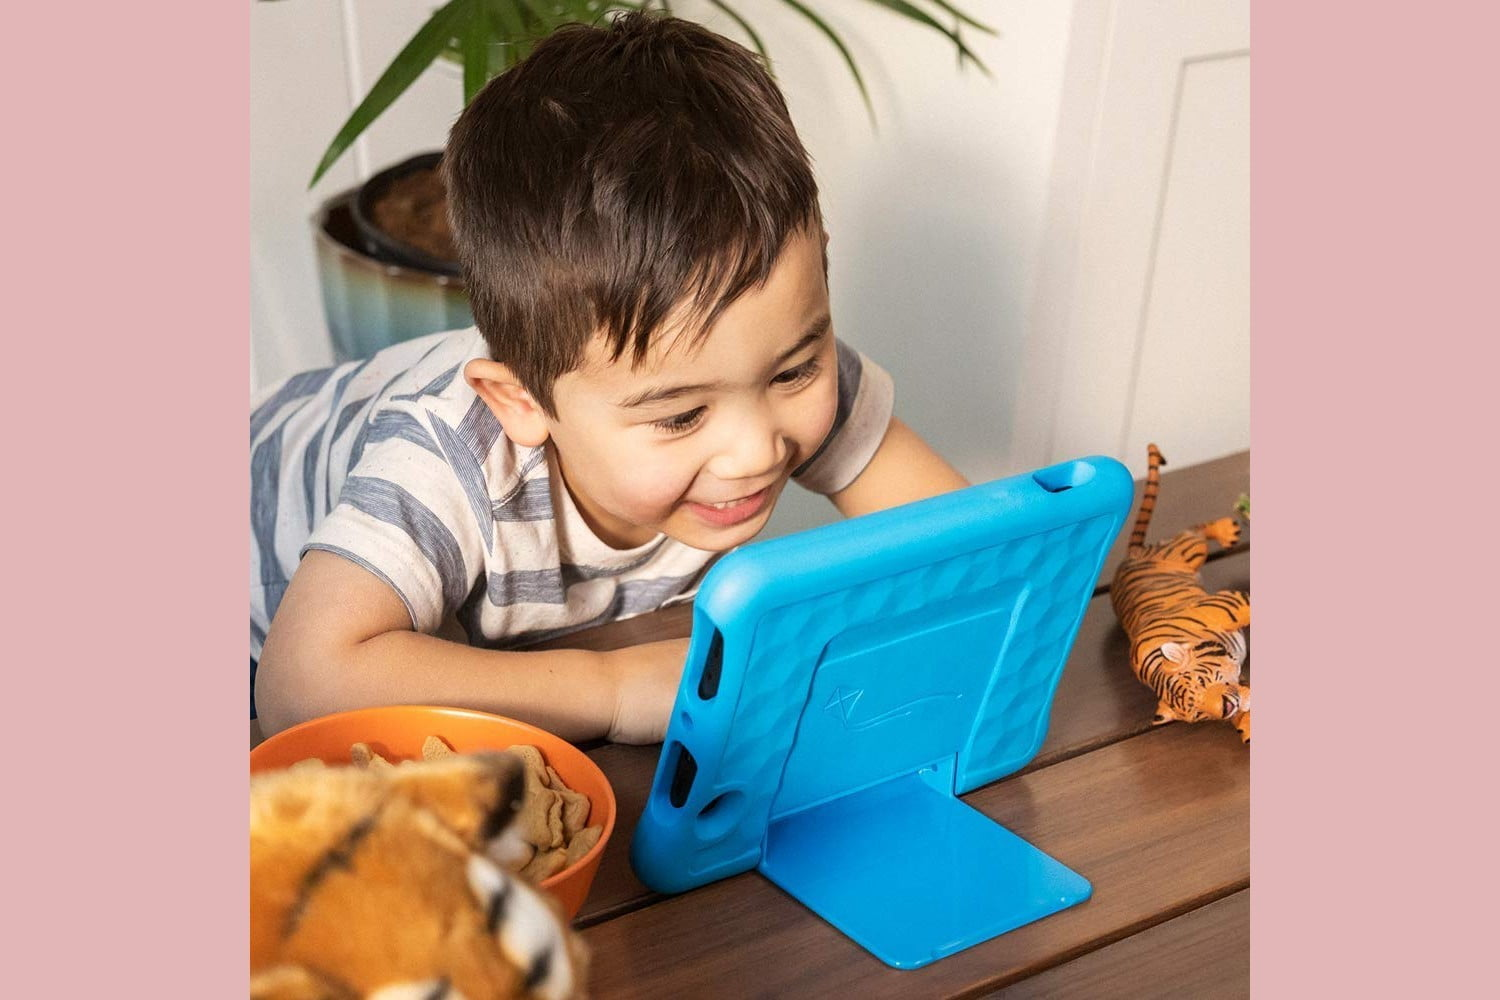 amazon slashes the prices on fire 7 and hd 8 tablets plus kids editions edition tablet 4  1